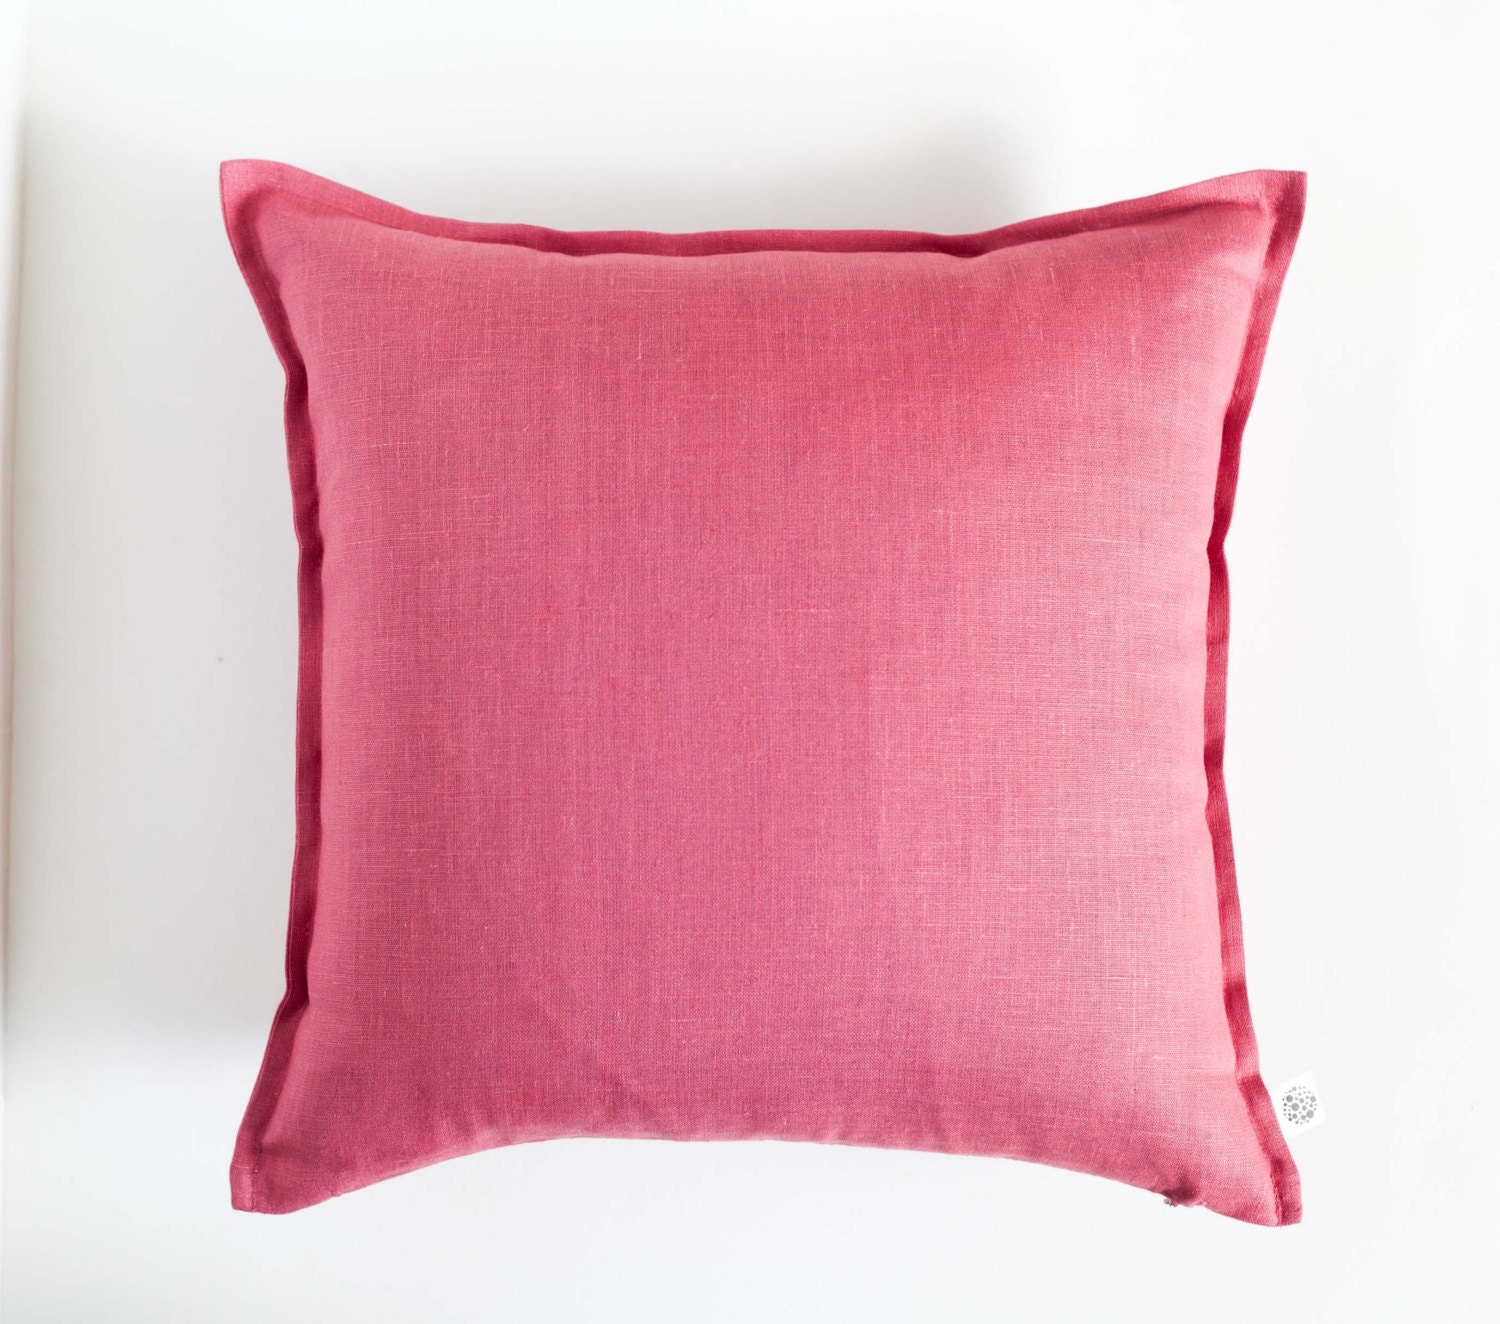 Pink Throw Pillows For Couch : Dark pink throw pillow raspberry pink pillow cover by pillowlink